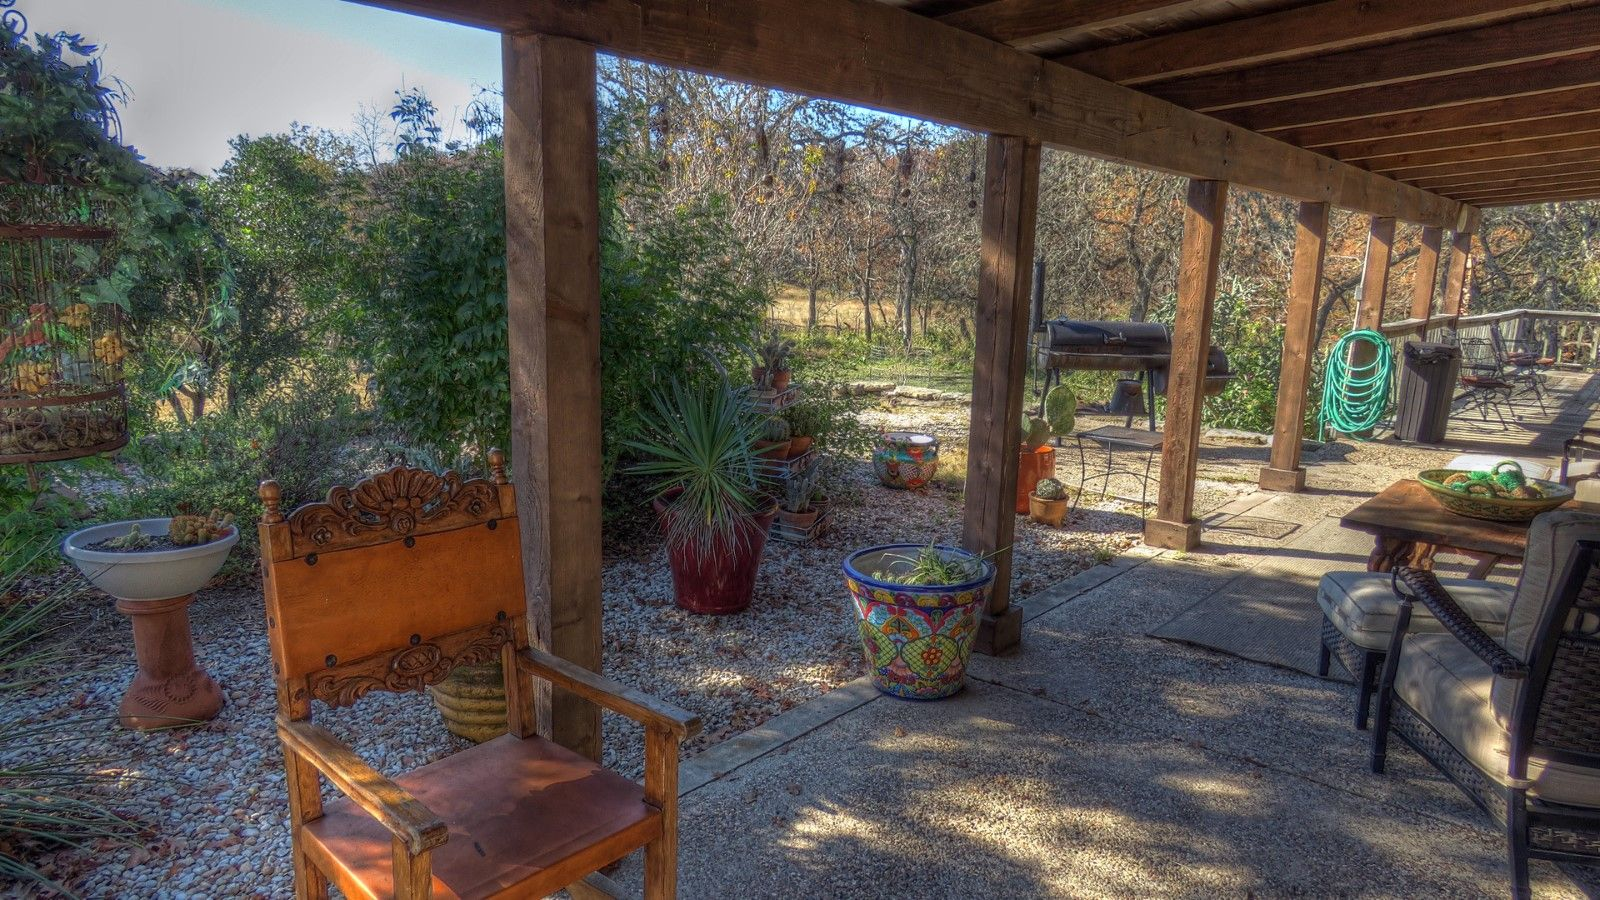 house rentals situated overlooking the banner stretches of right on cr a frio is this vacation concan in rio with lodging cabins casa nicest one deck river